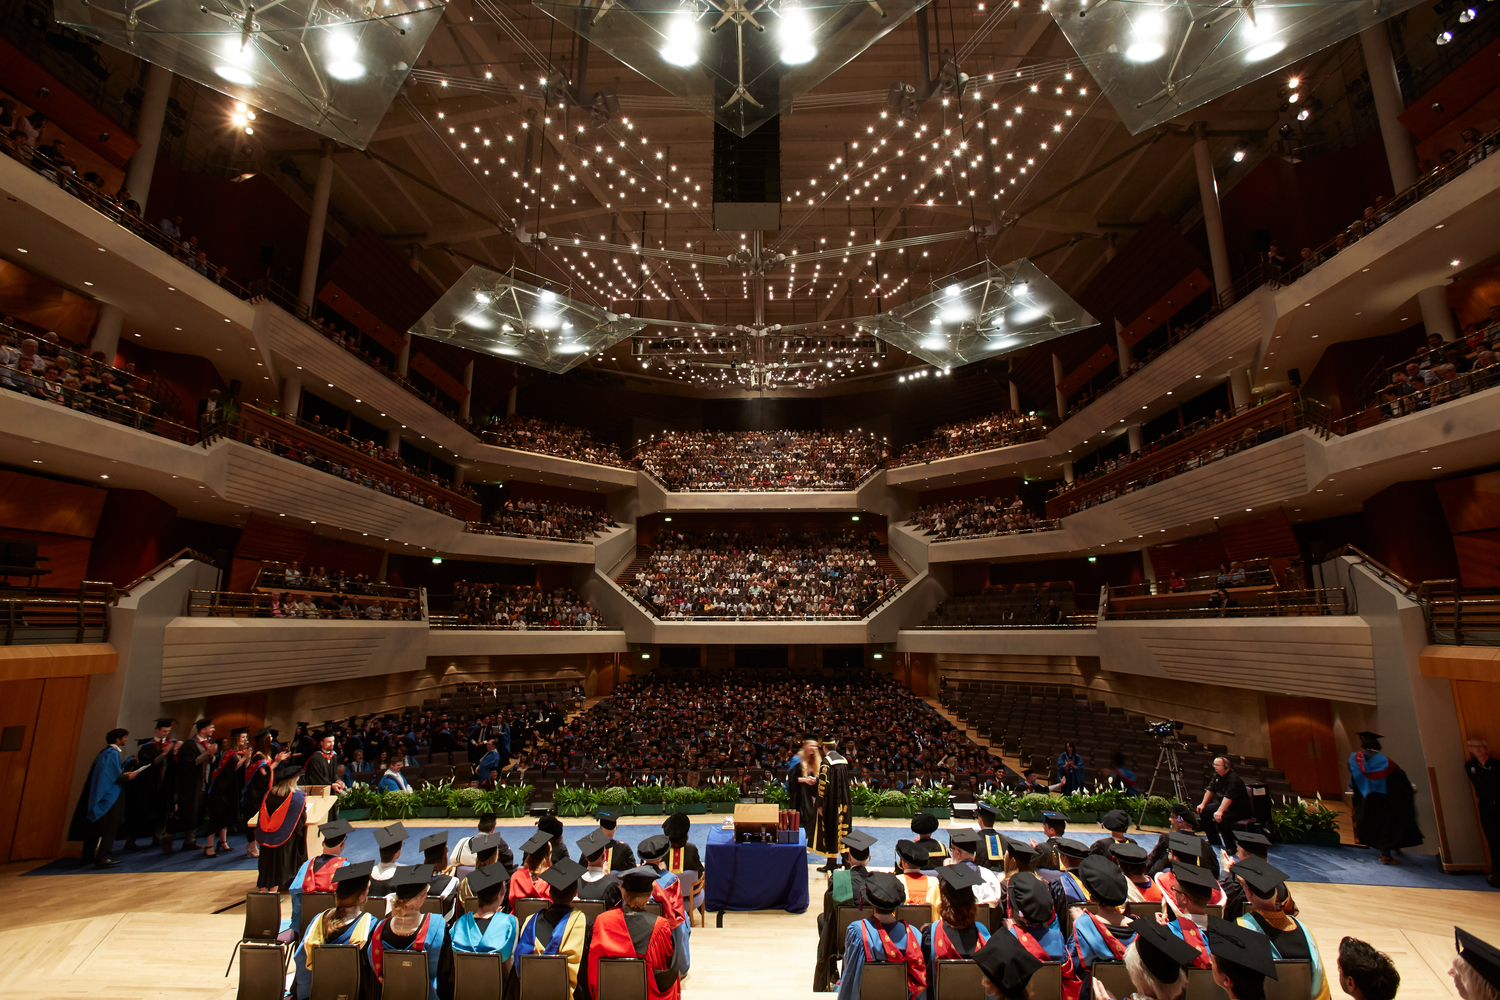 Graduation ceremonies take place in the resplendent Bridgewater Hall